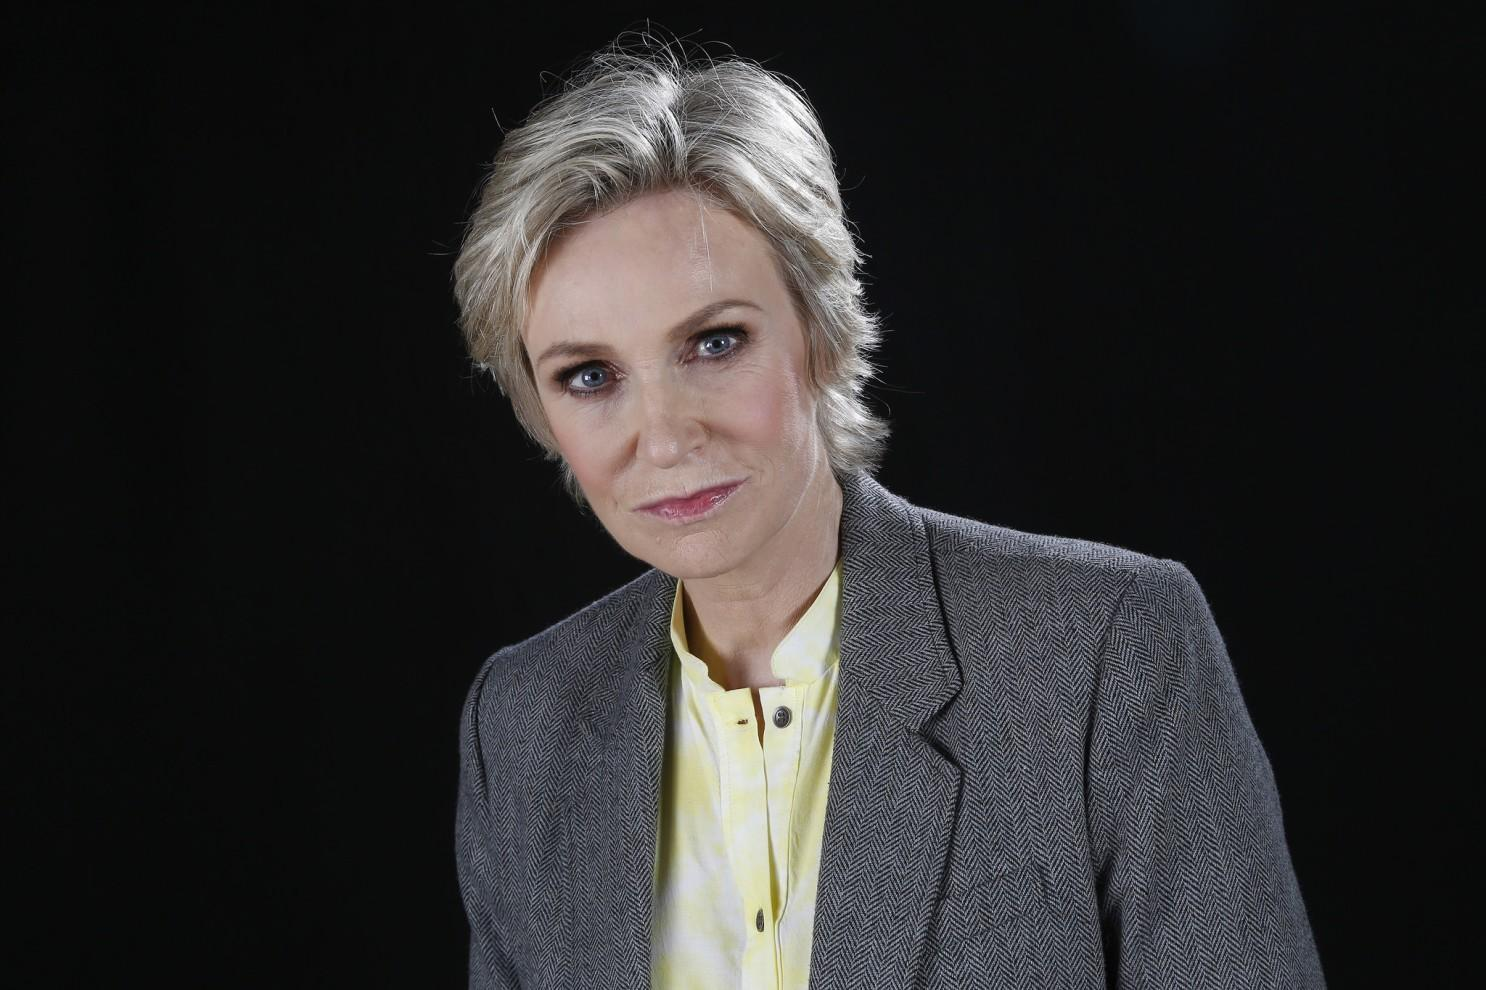 Jane Lynch Gets Backlash After Controversial Stance On Billionaire 'Rights'